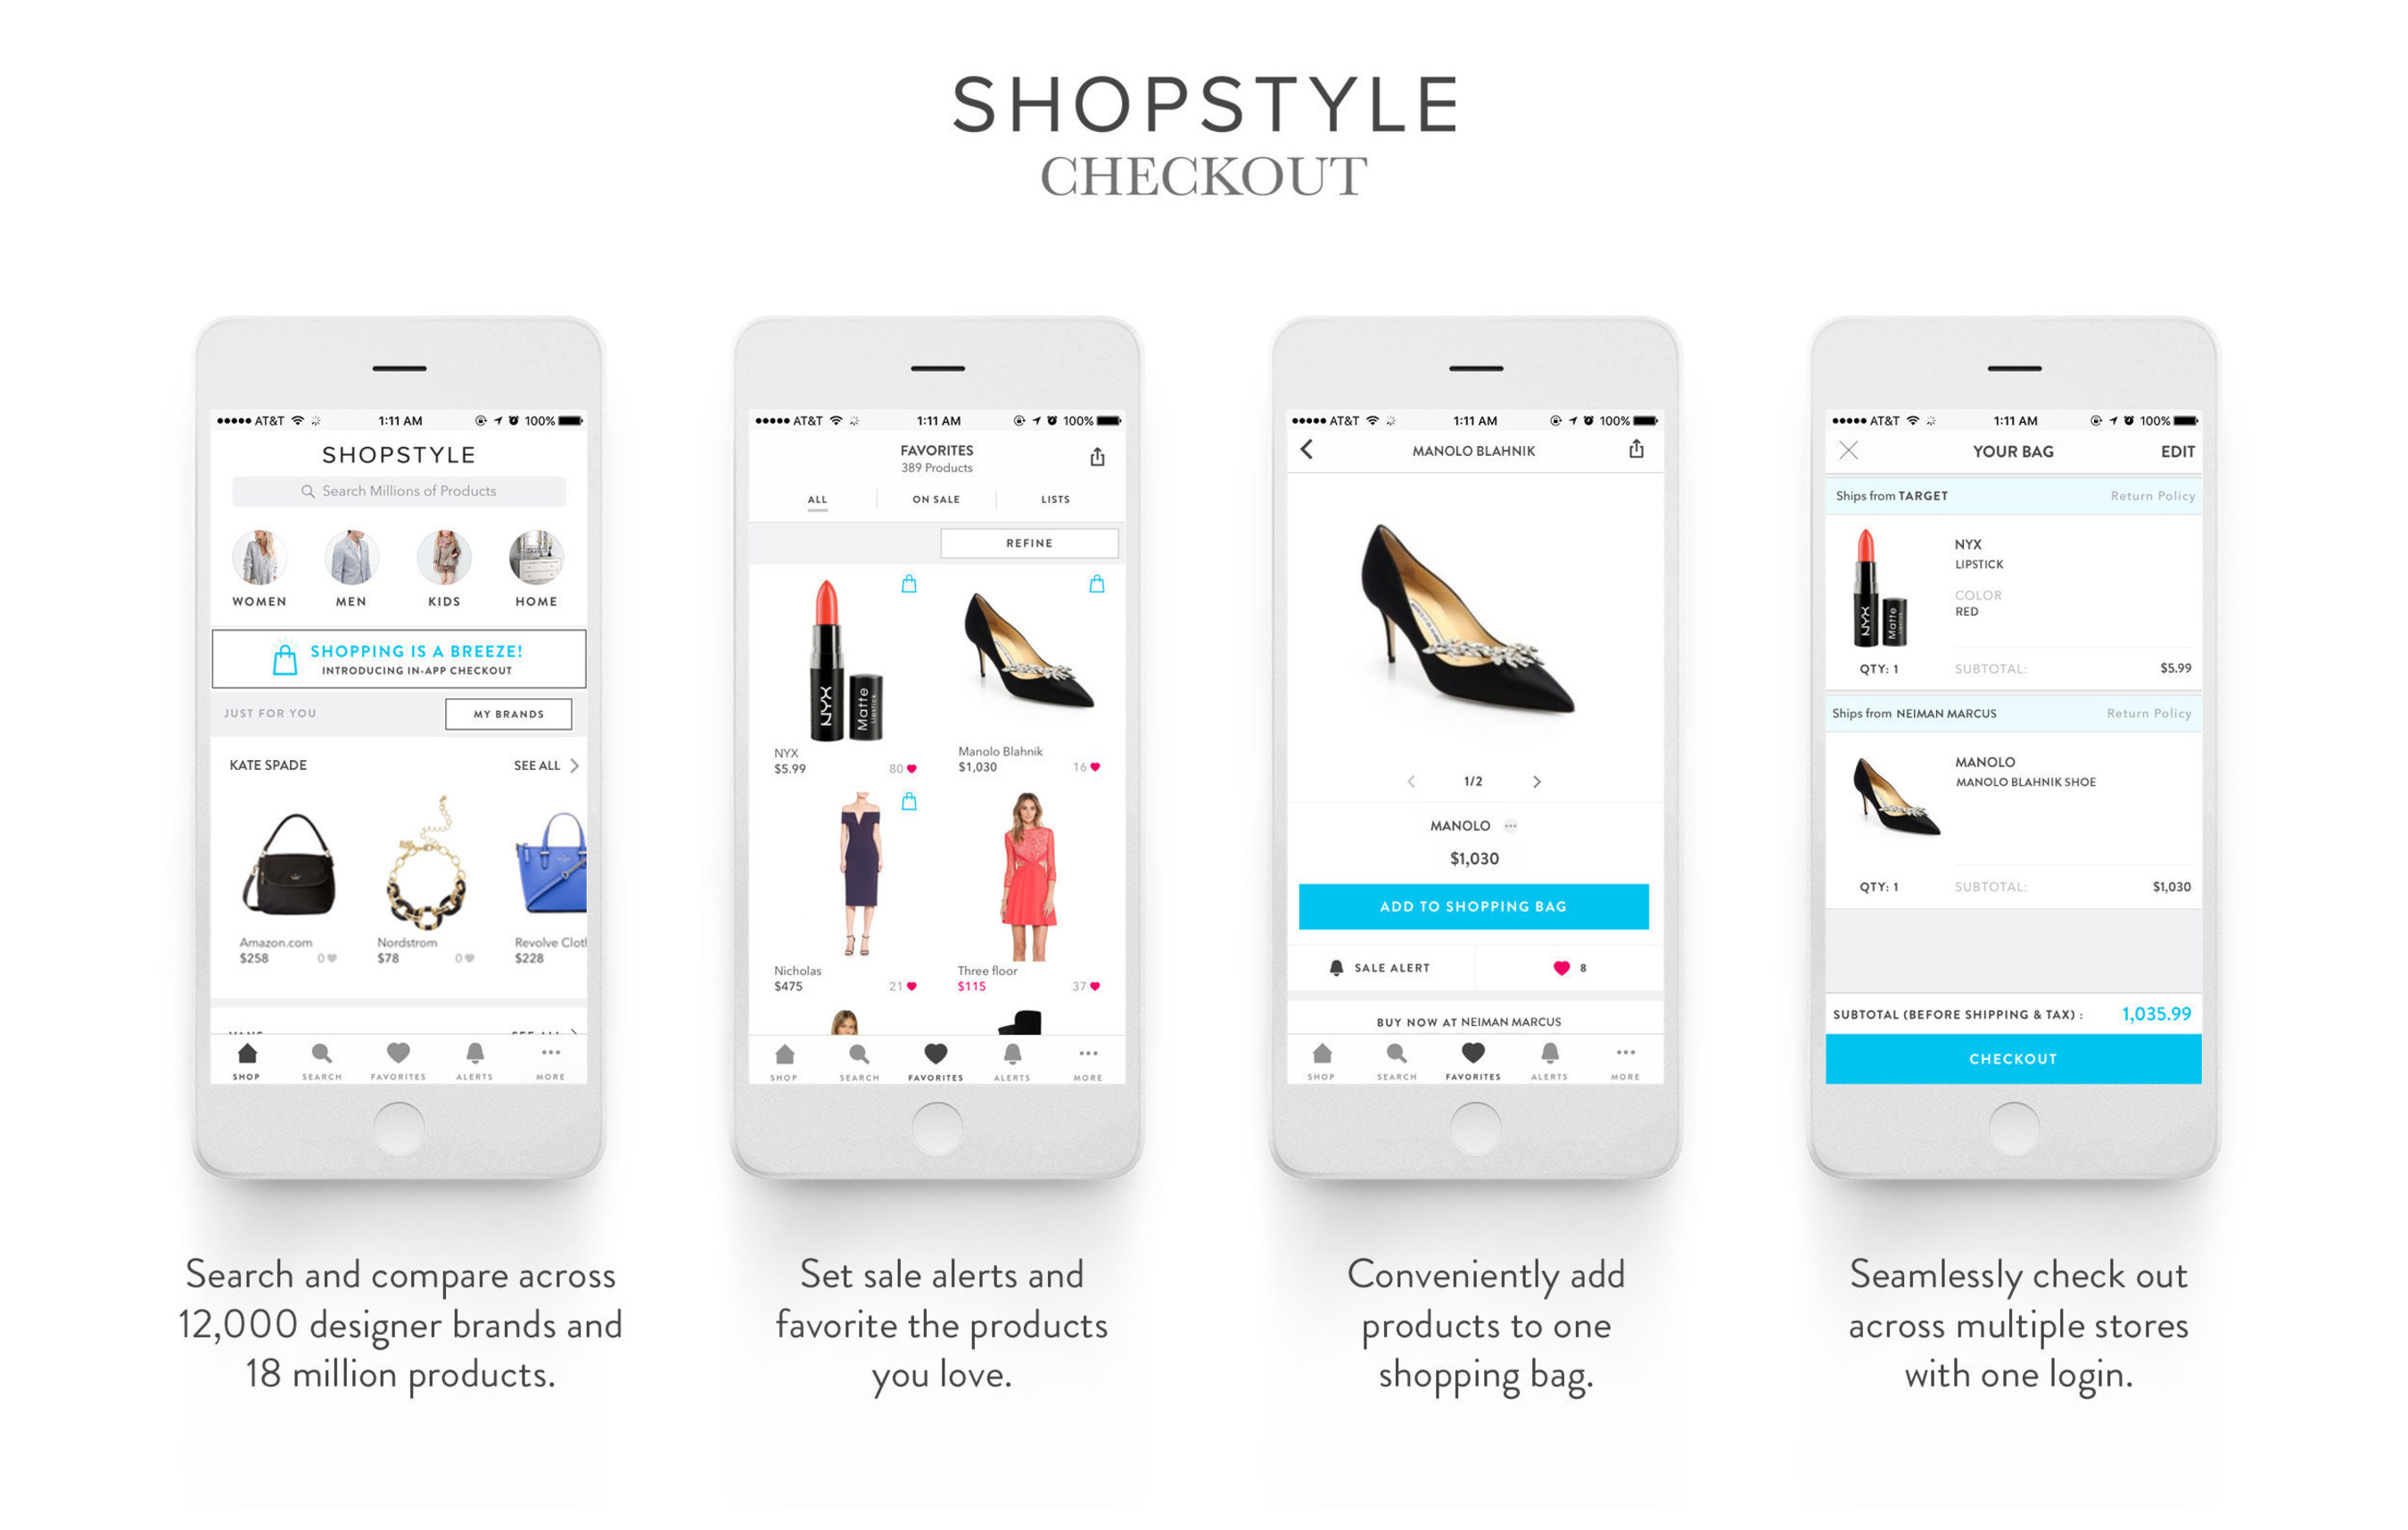 POPSUGAR Inc. Announces Plans To Launch ShopStyle Checkout